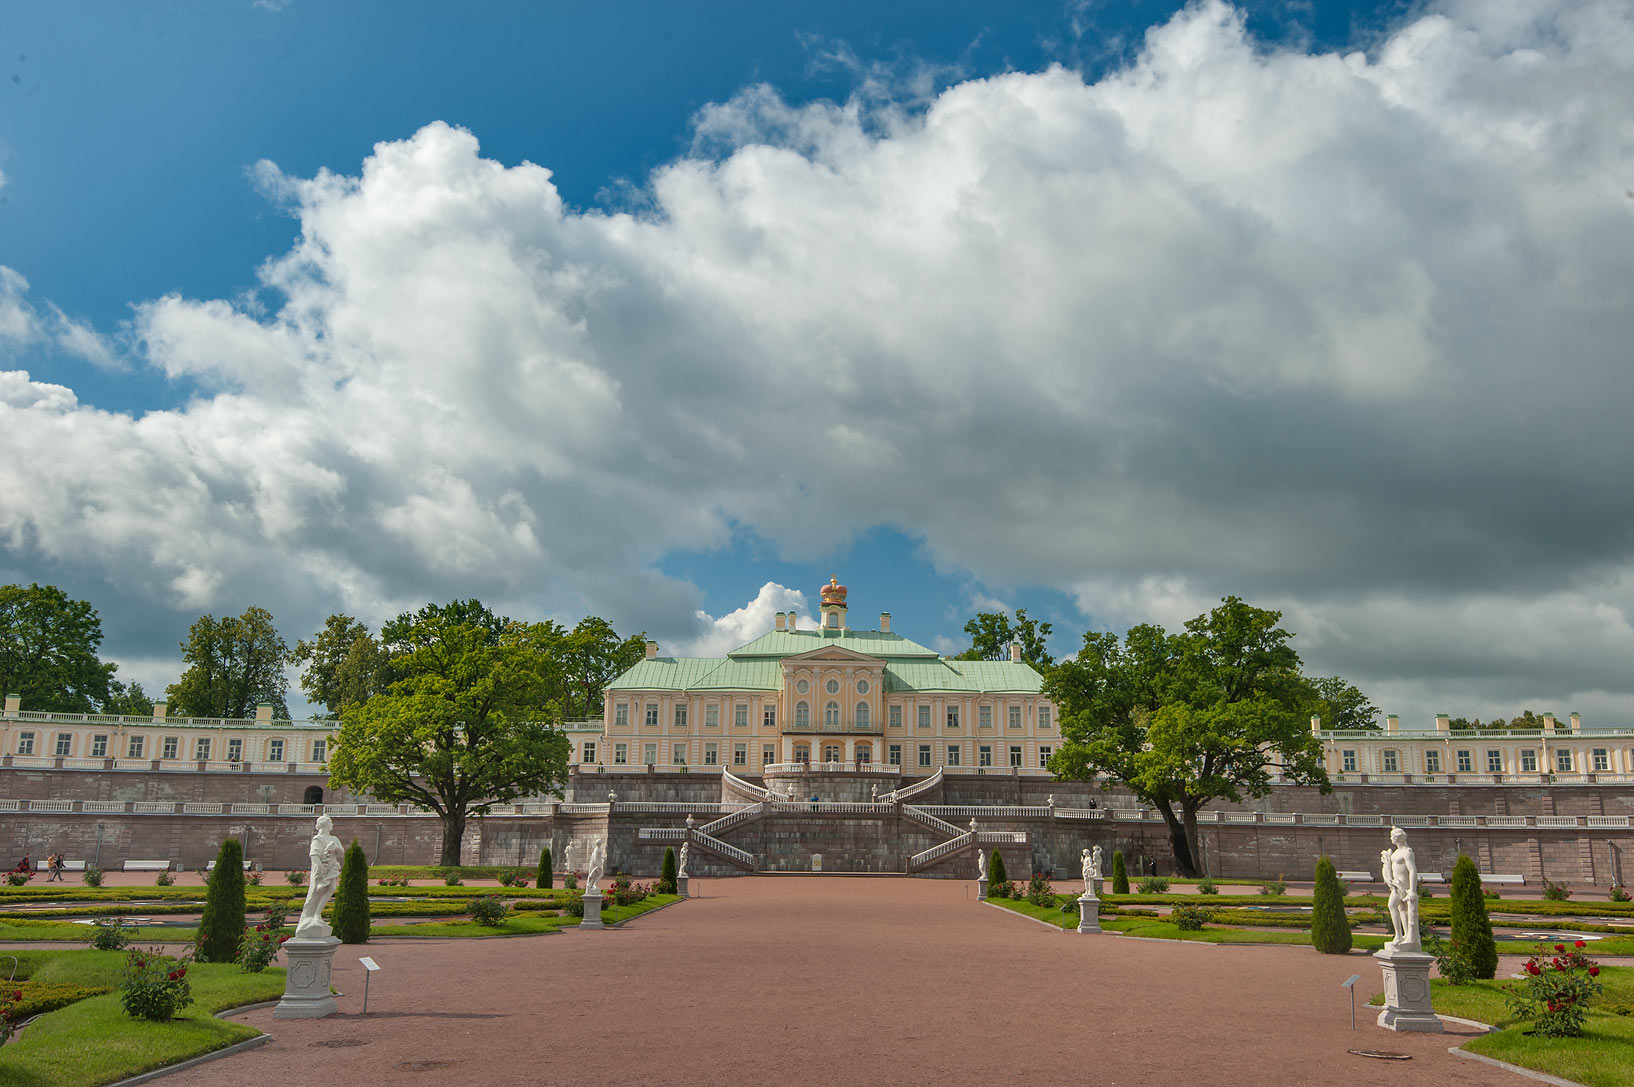 Grand (Menshikov) Palace in Oranienbaum. Lomonosov, west from St.Petersburg, Russia